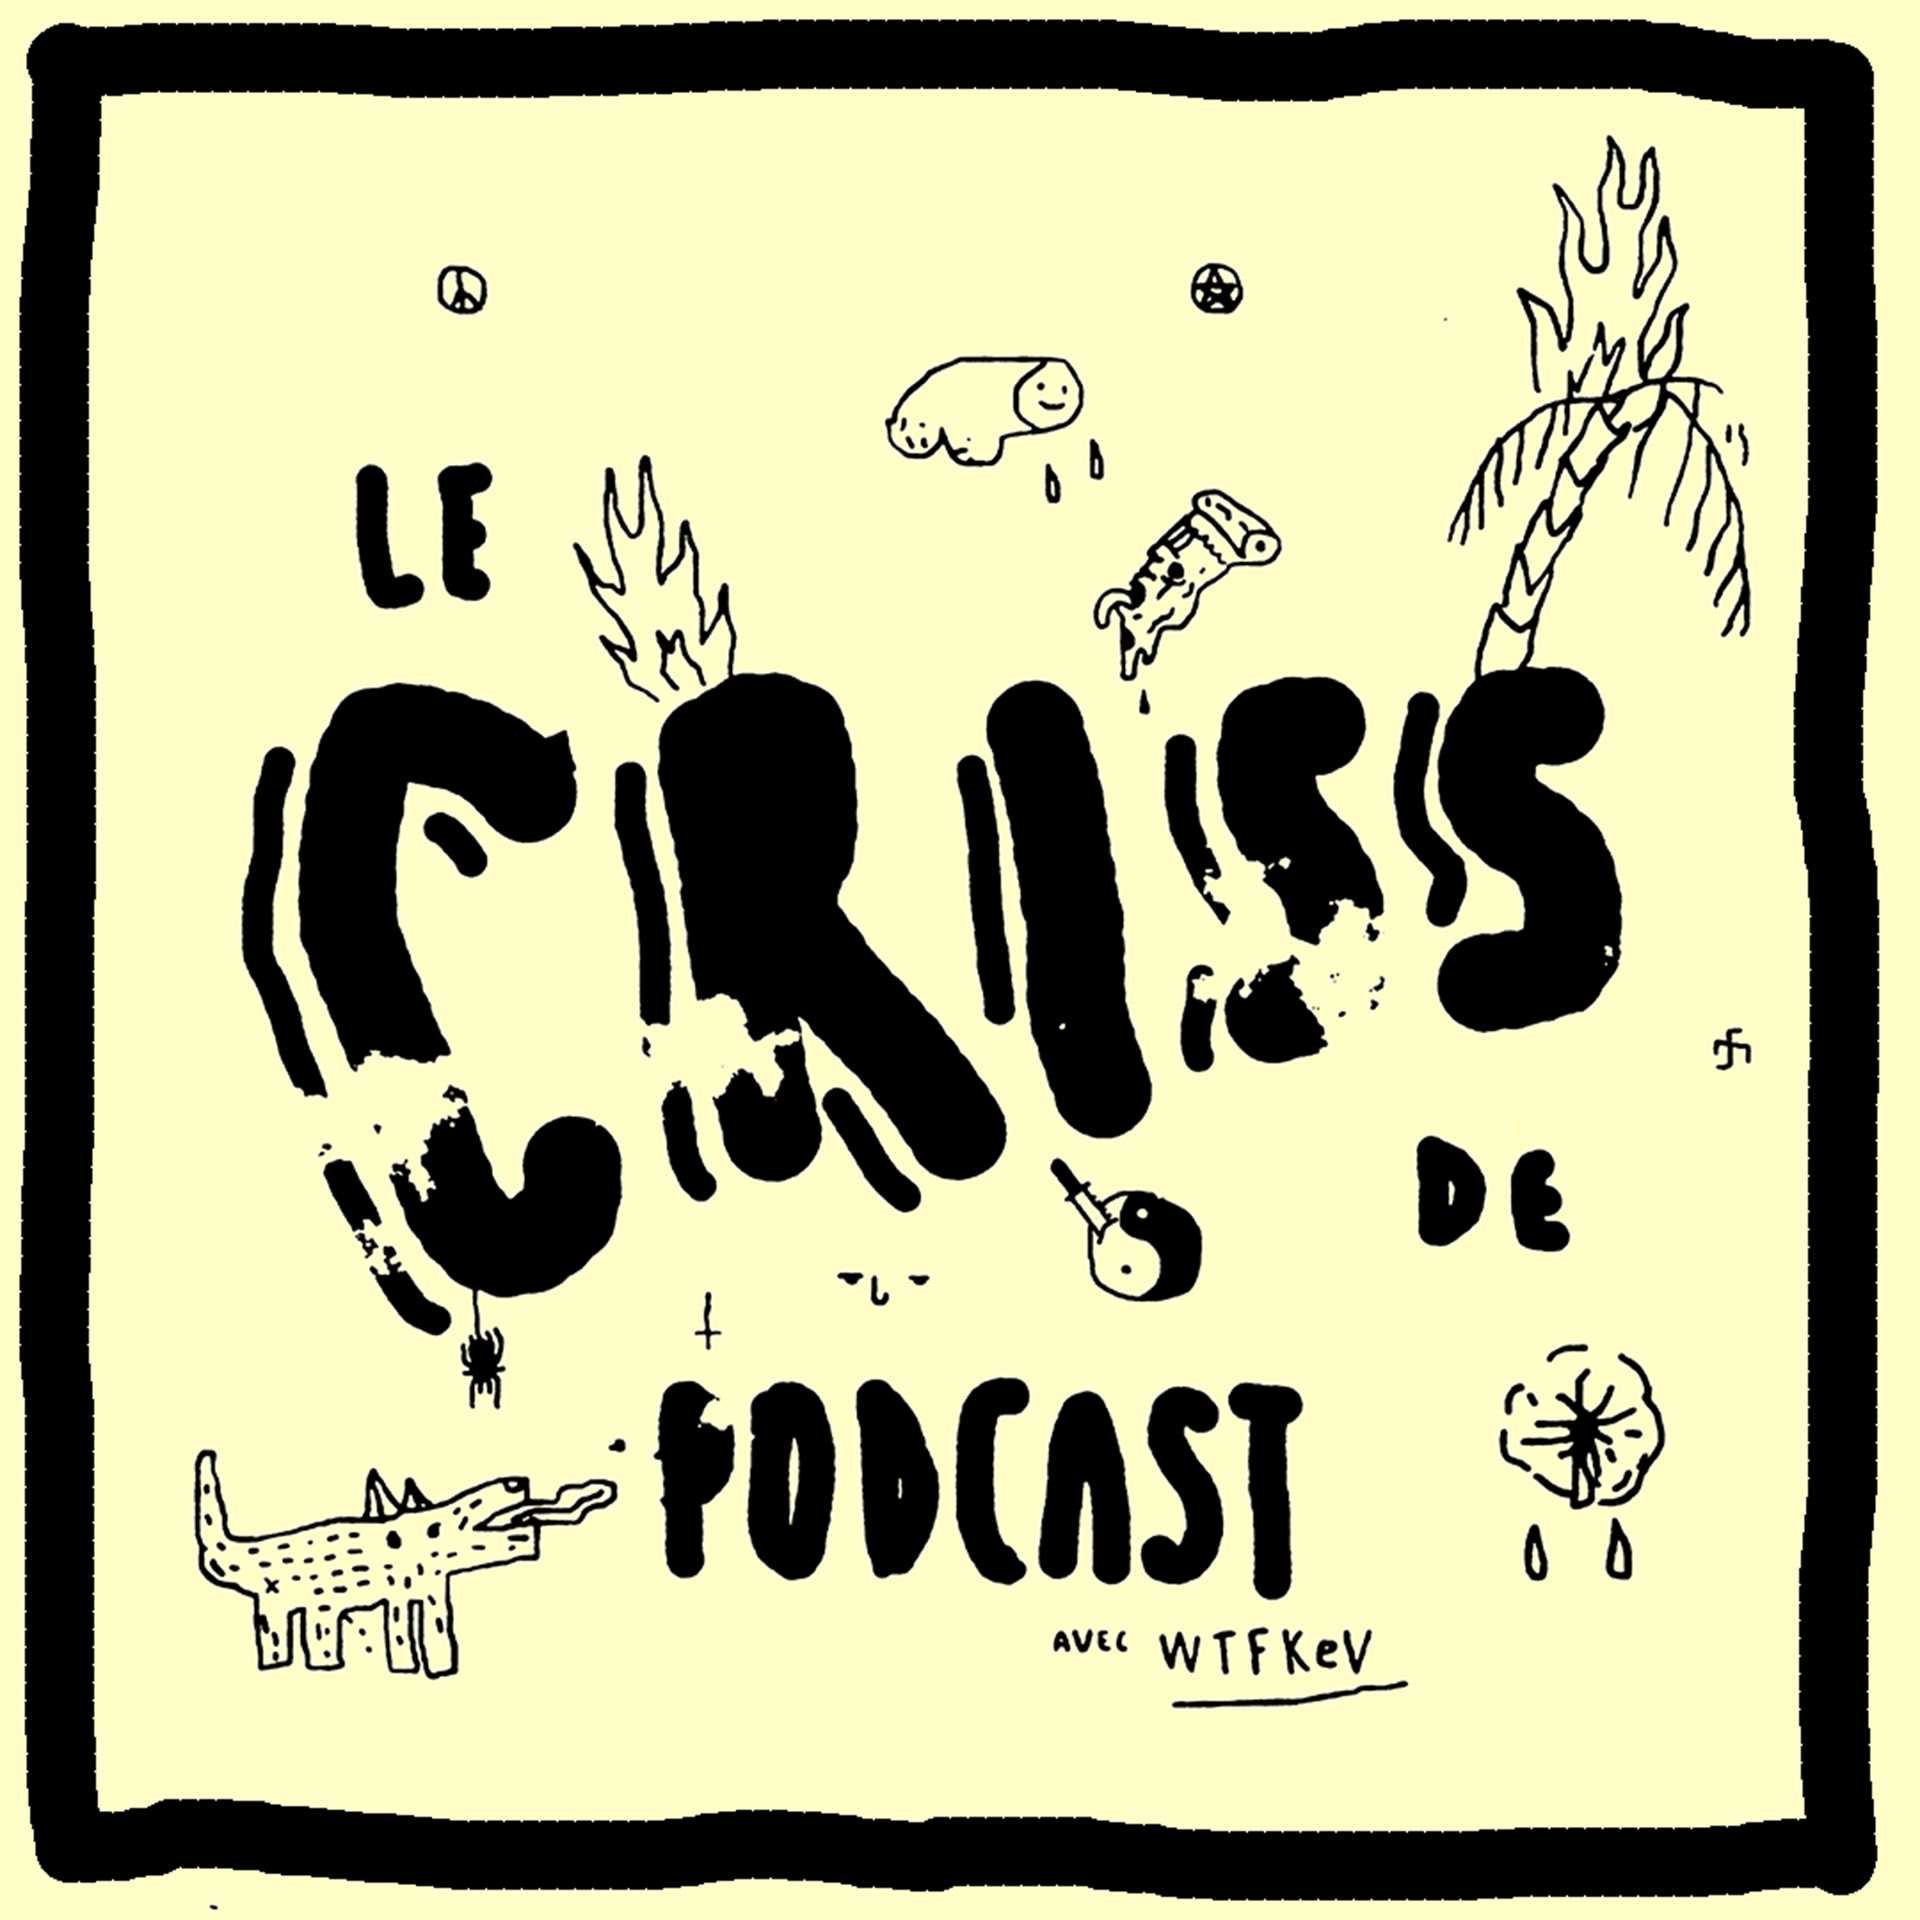 Le Criss de Podcast